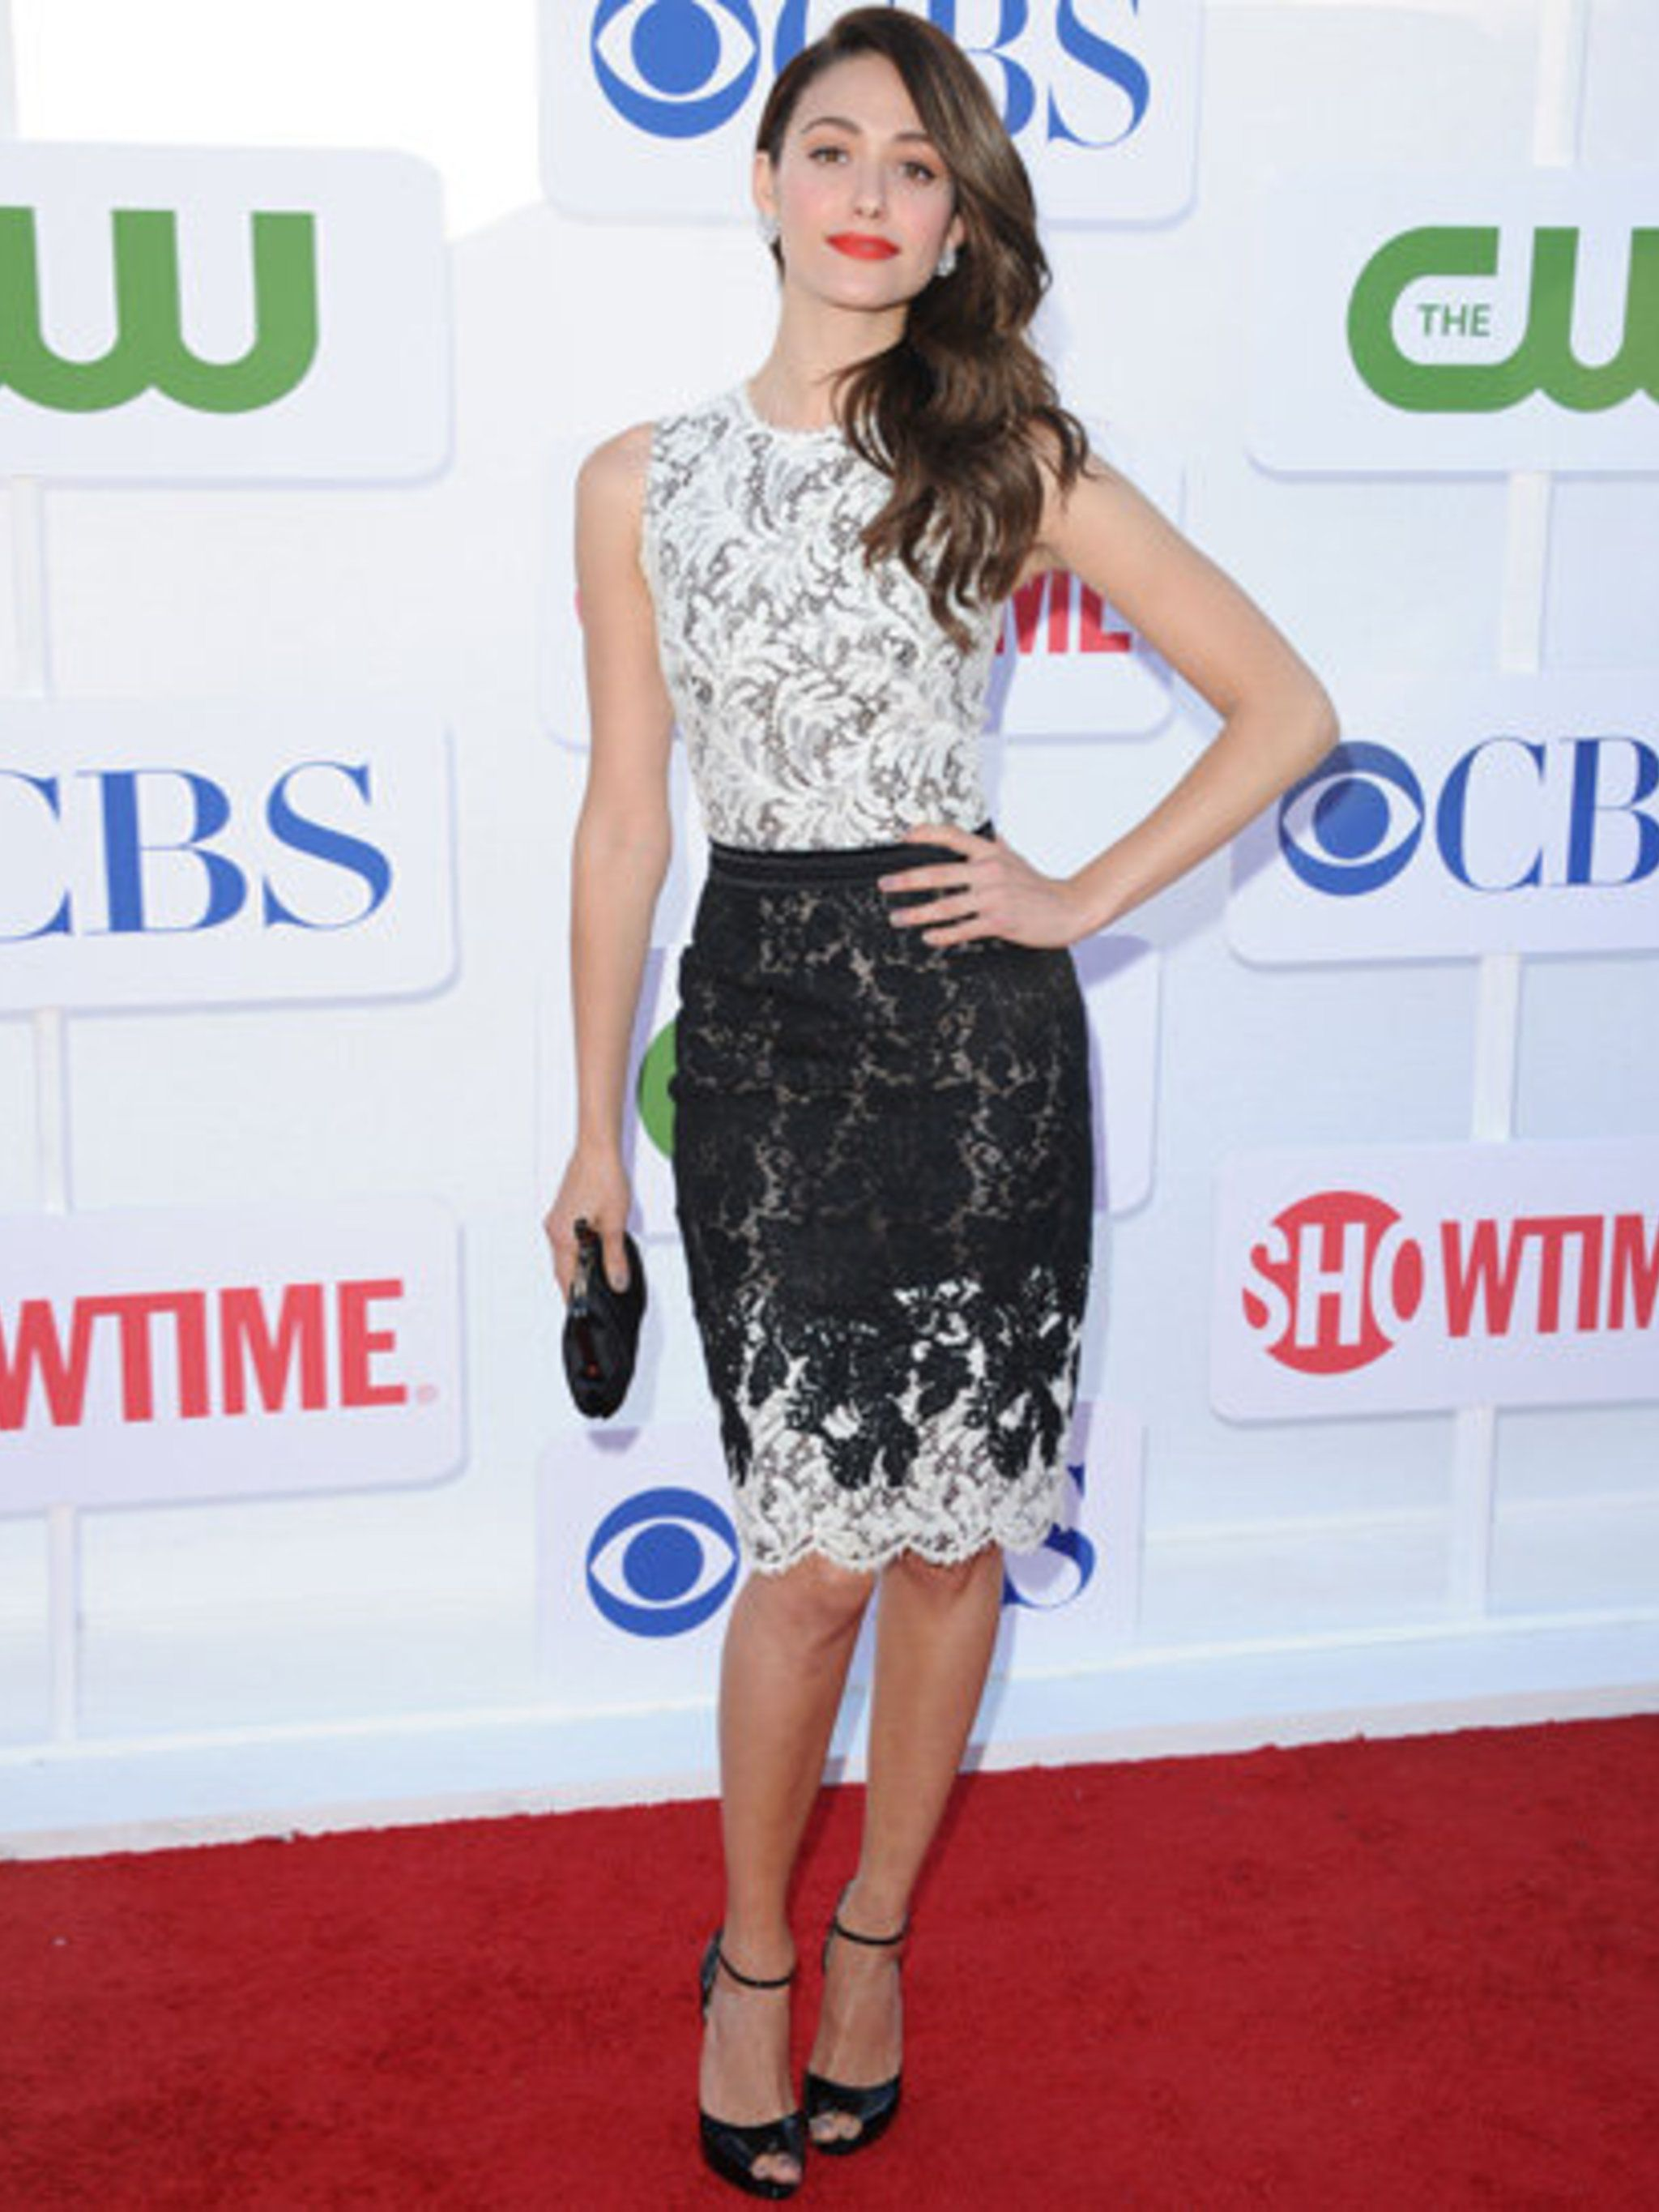 <p>Emmy Rossum in Zuhair Murad at the CBS Summer Tour party in LA</p>